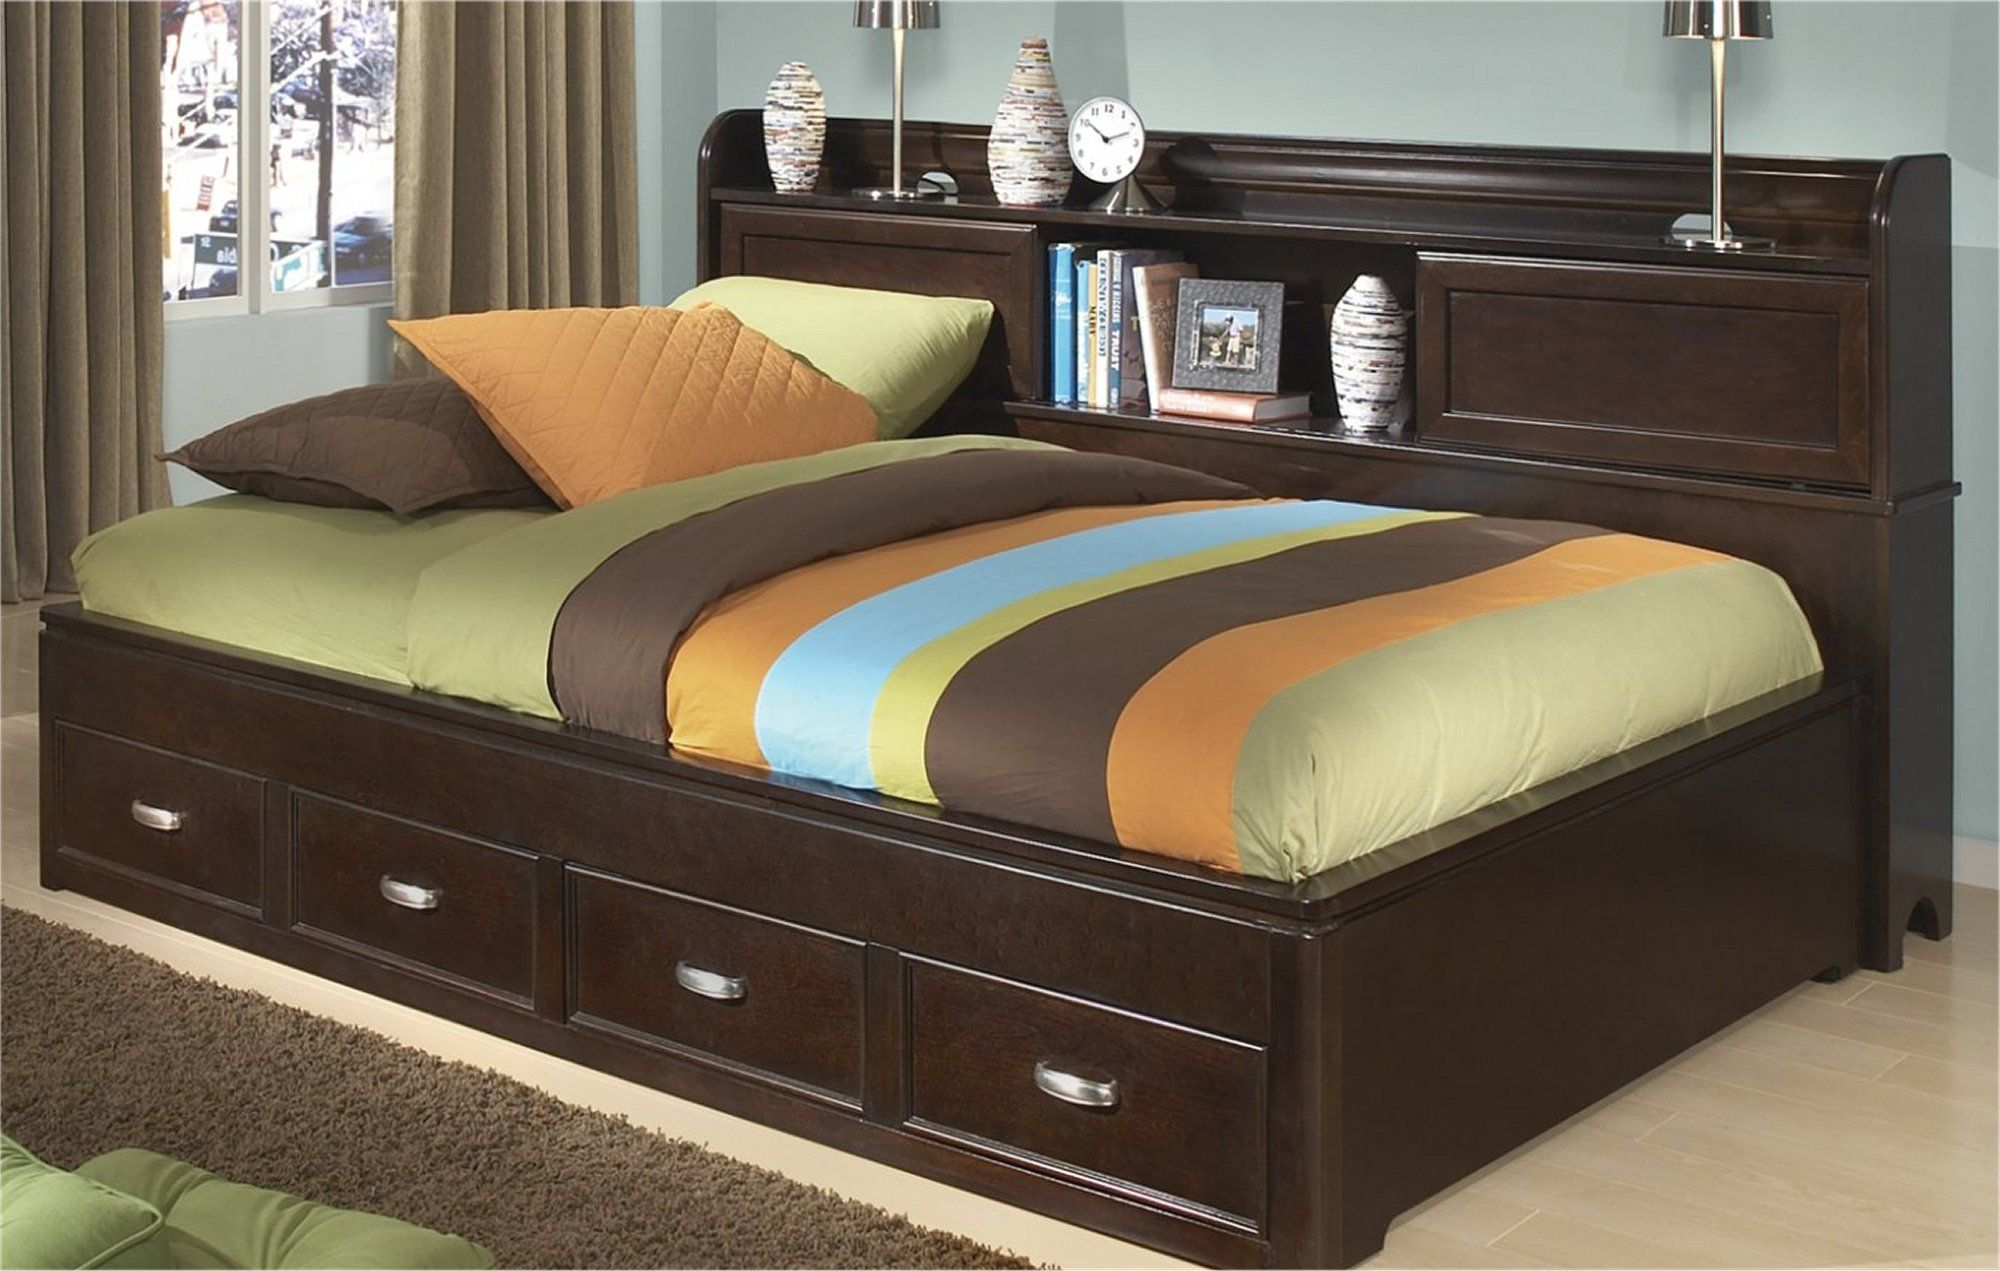 A best seller! The Island bed with storage in the headboard and